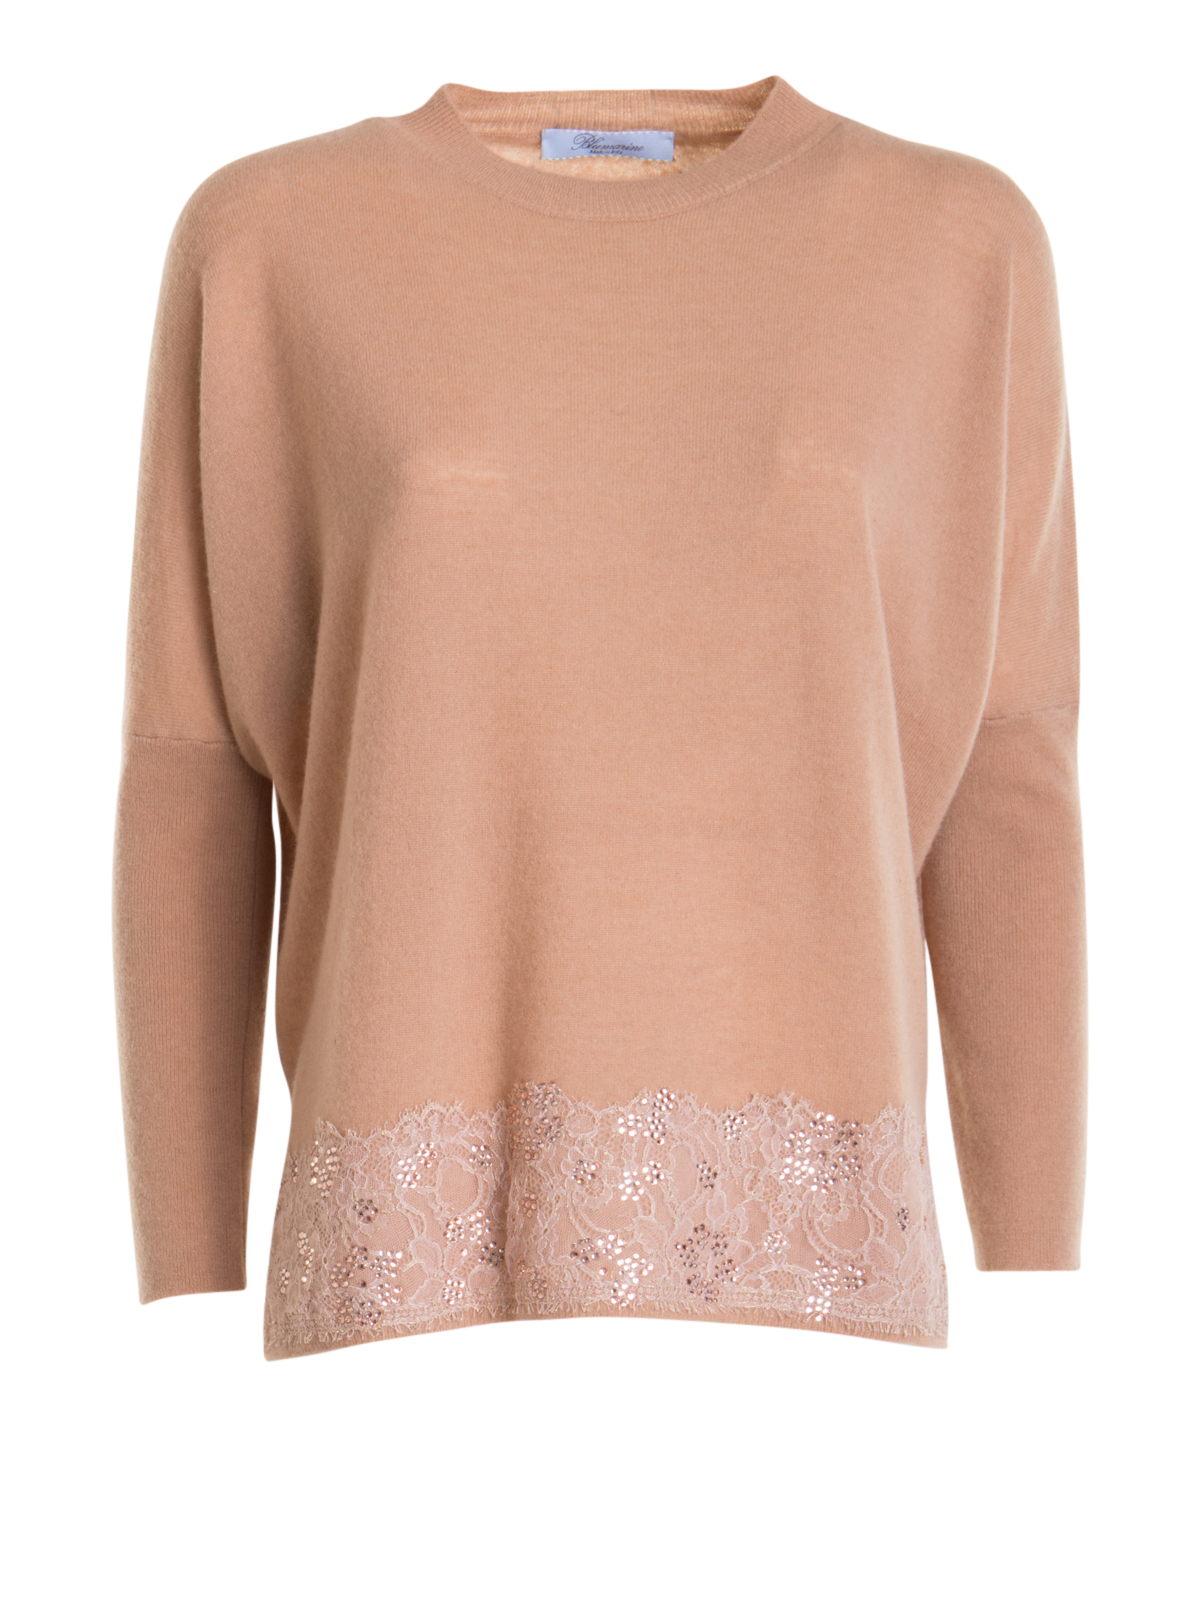 Blumarine SWEATER WITH EMBROIDERY